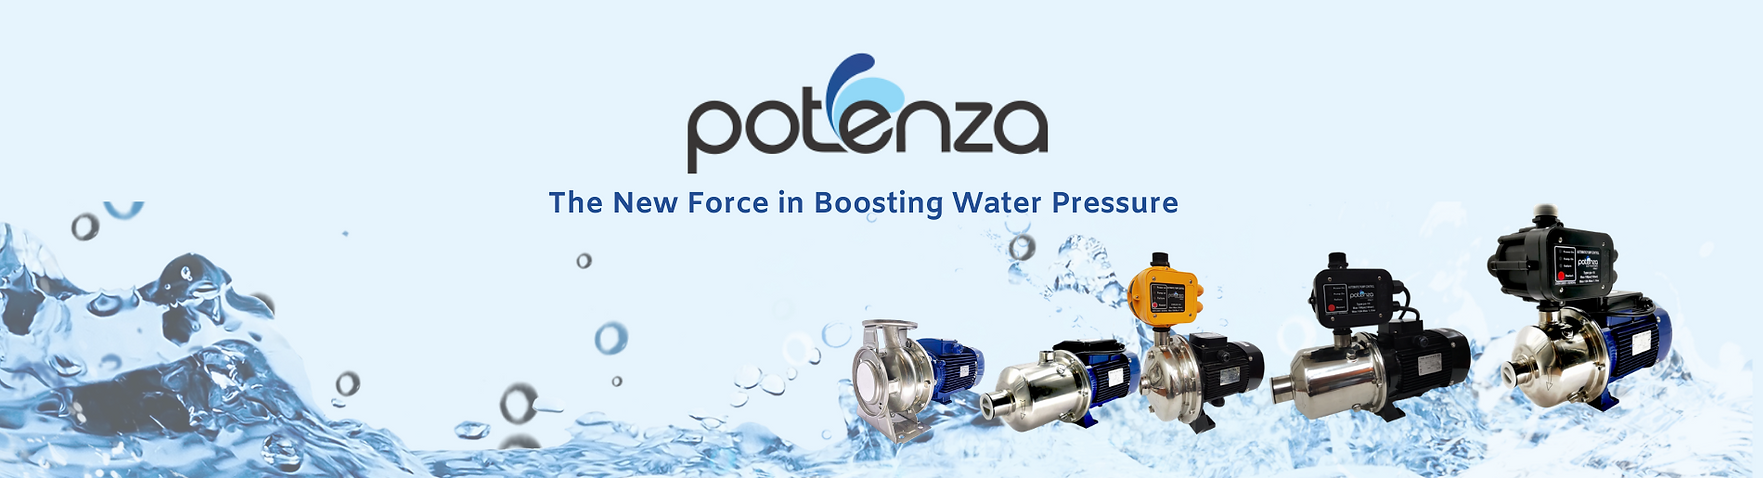 The New Force in Boosting Water Pressure